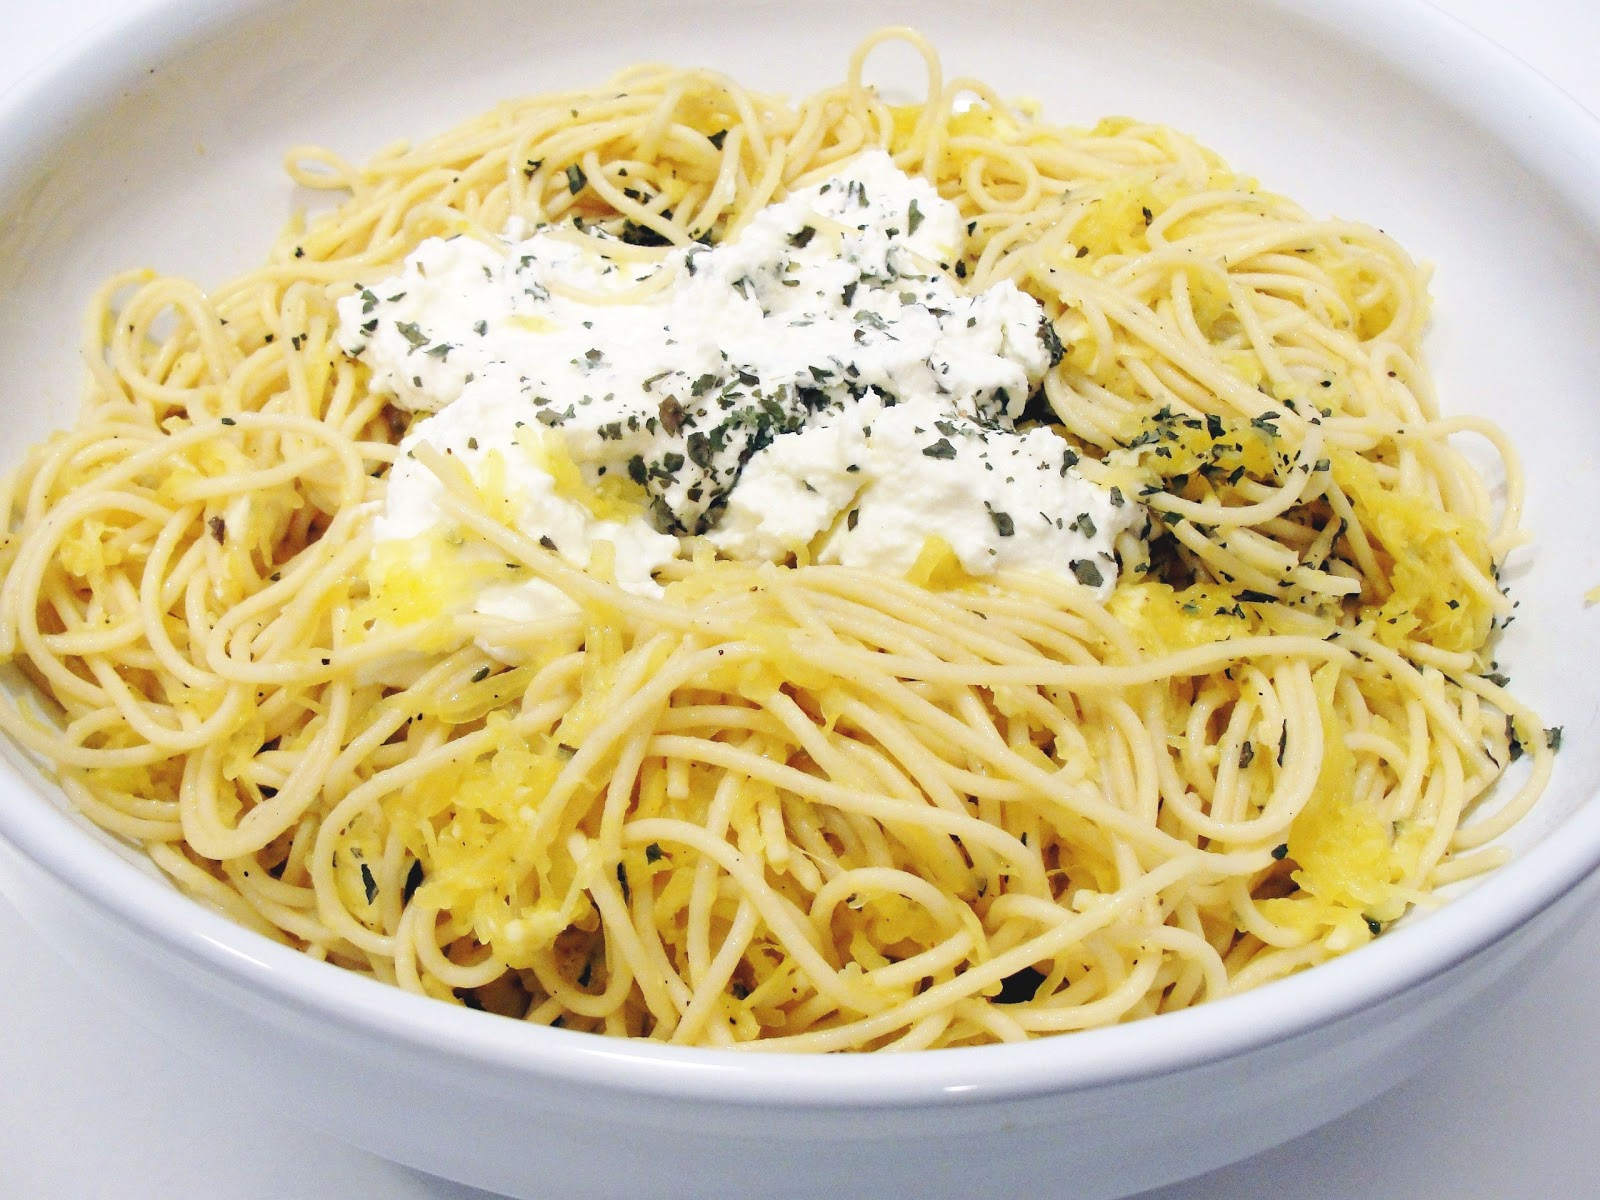 Spaghetti Squash Spaghetti with Lemon Garlic Sauce and Ricotta